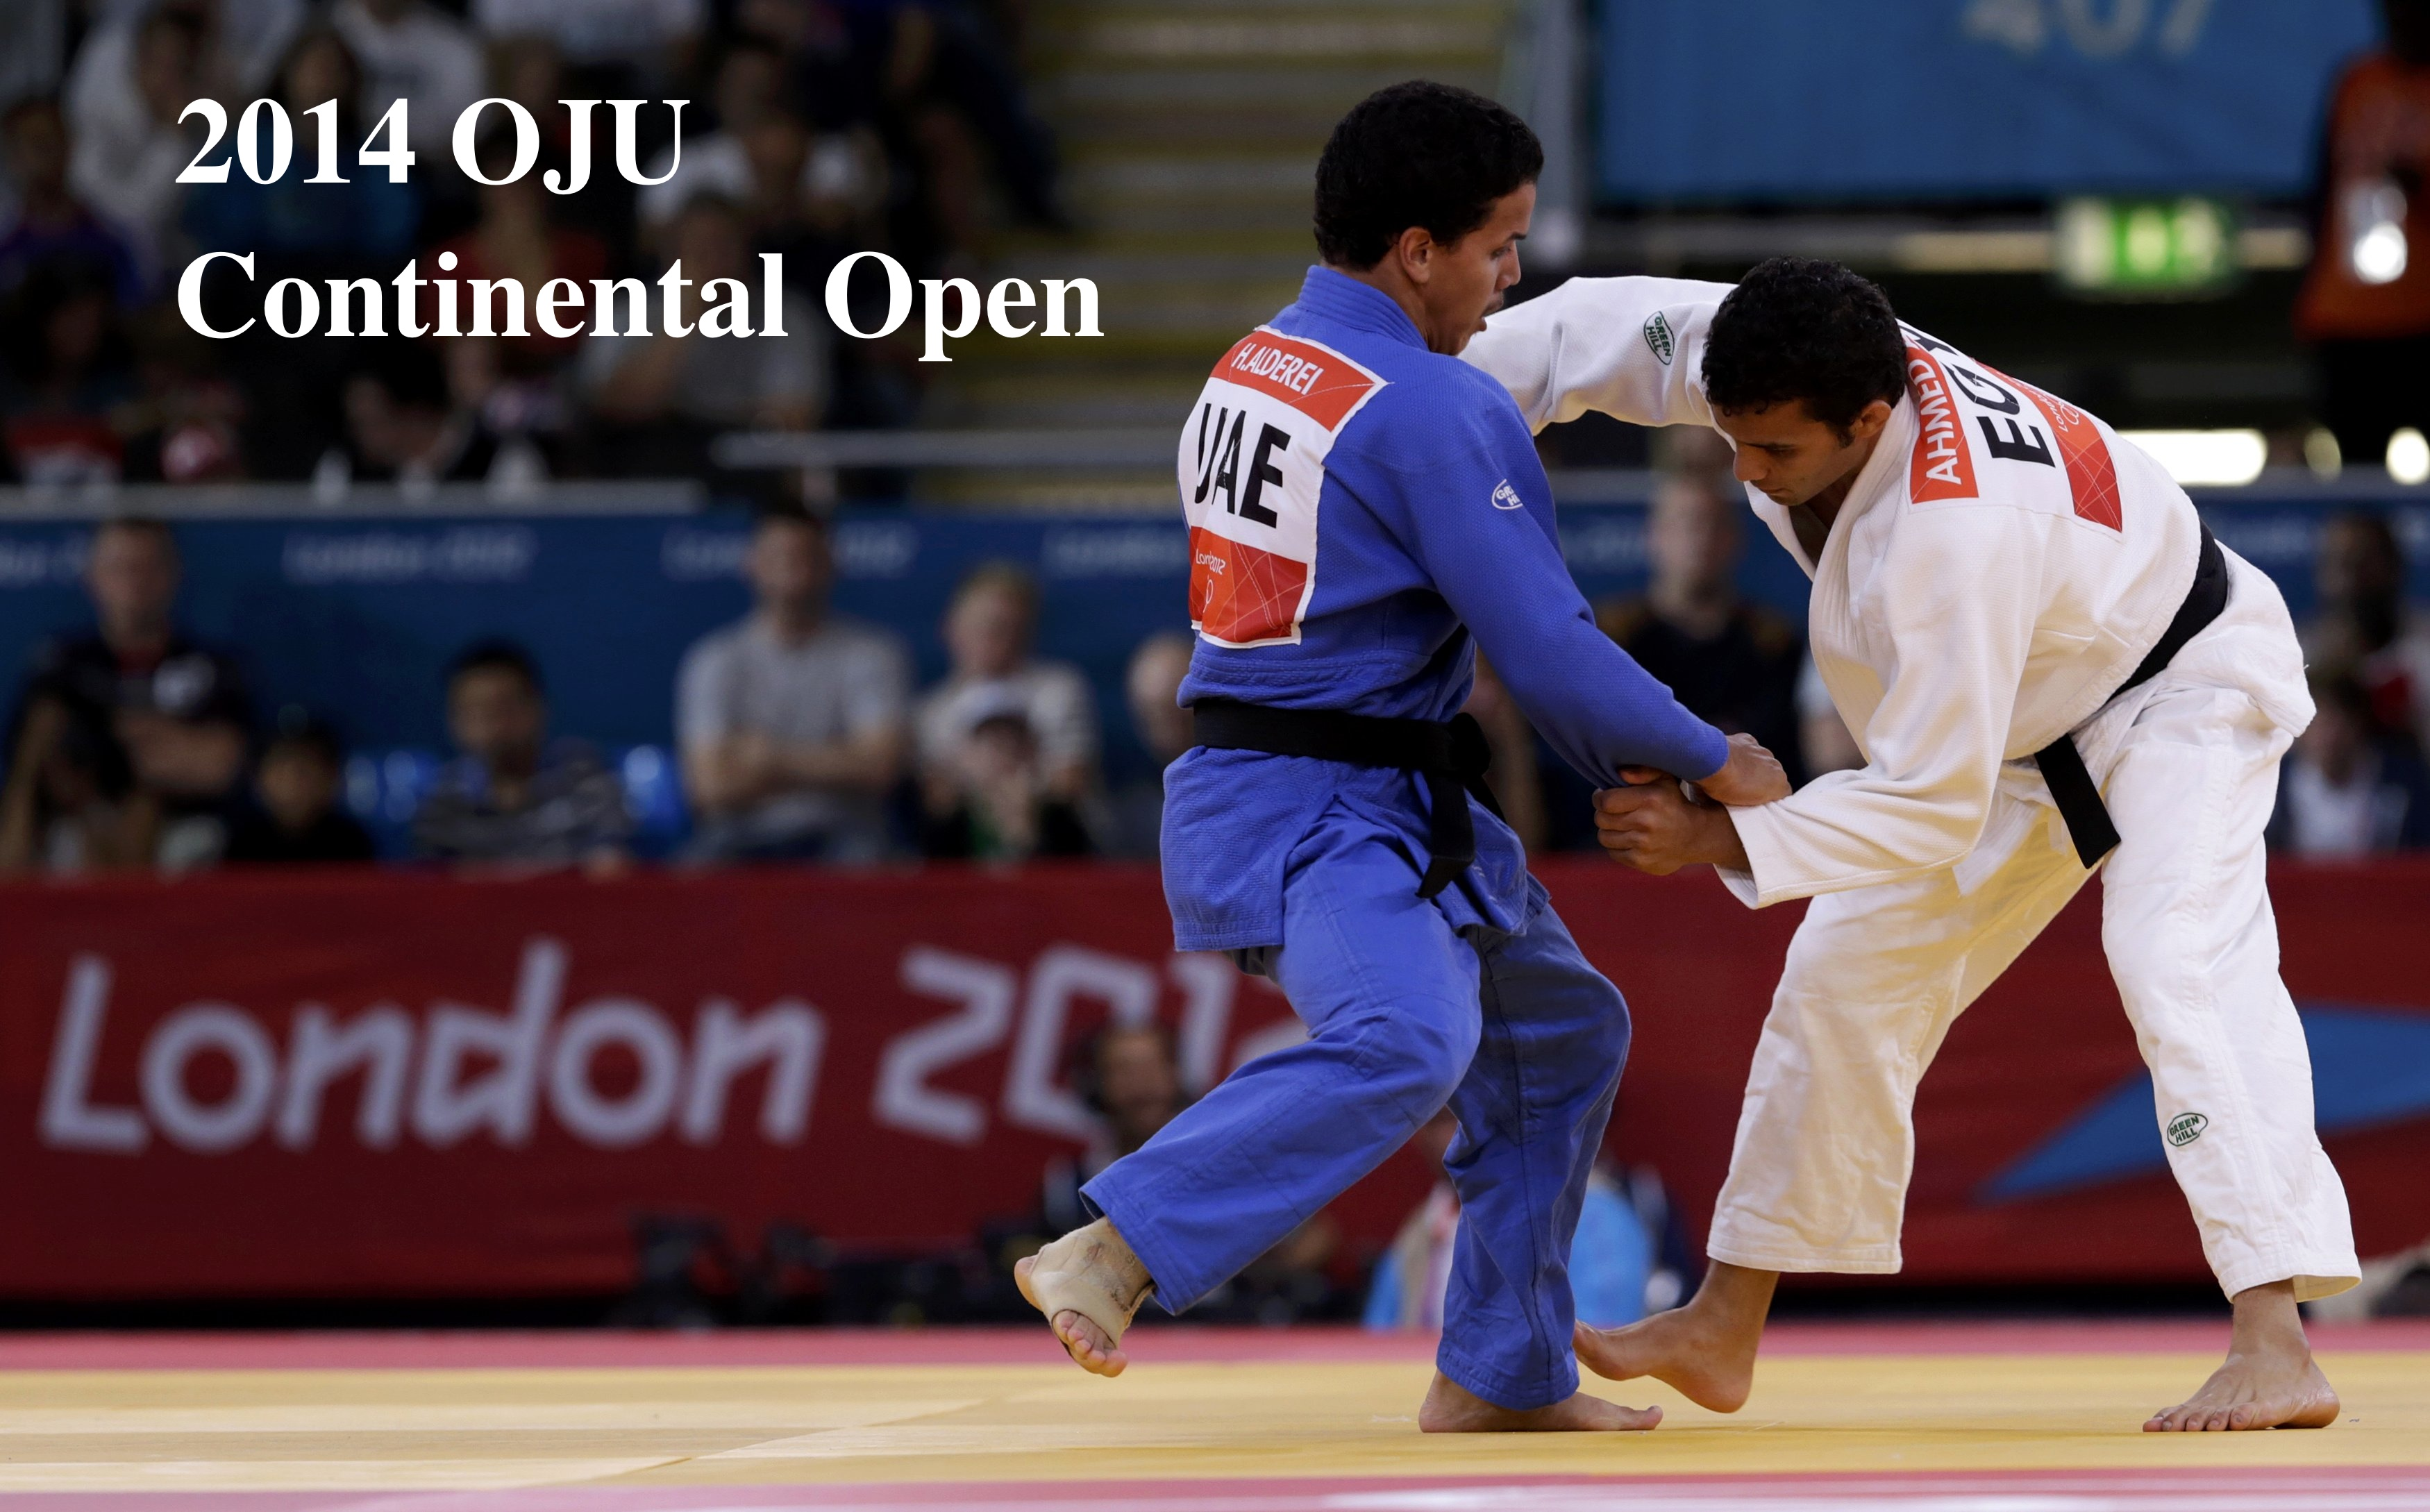 2014 OJU Continental Open, 14-15 November